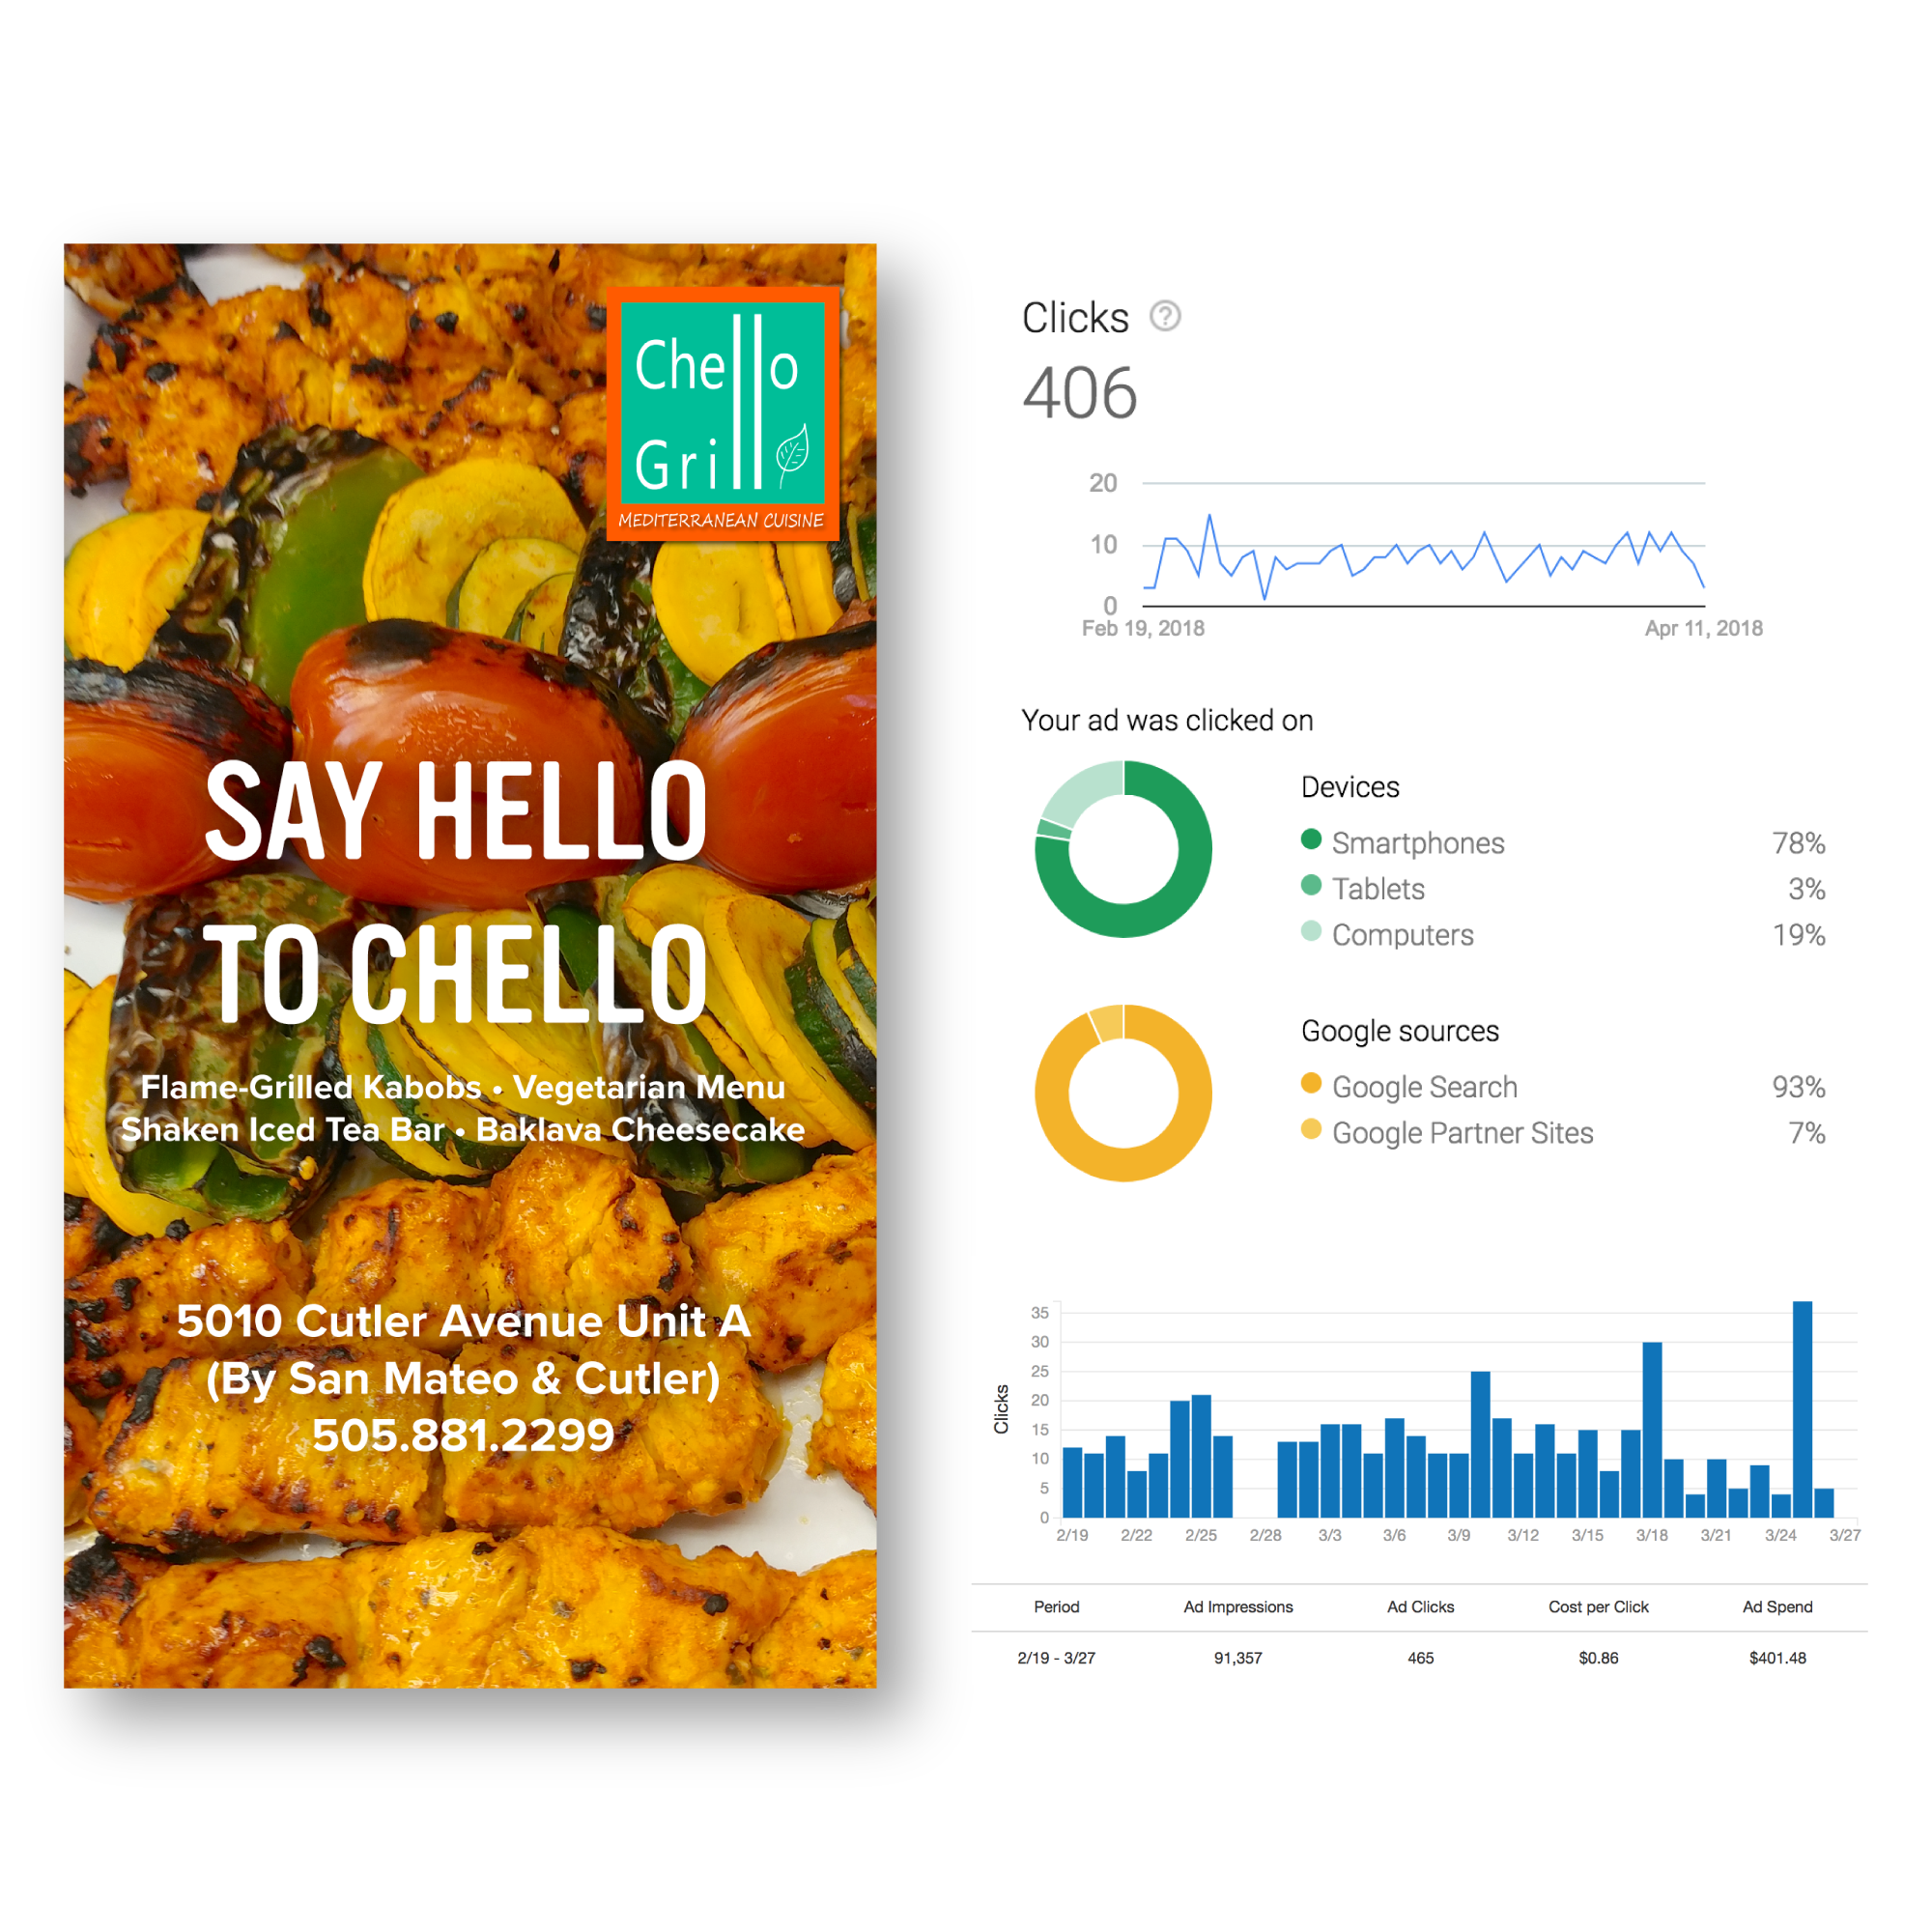 Online Advertising - Through the use of Google AdWords, Yelp, Trip Advisor, and Snapchat I created advertisements that were segmented towards the Albuquerque population. Chello Grill is a new startup, and the goal was to use as many methods available to promote the restaurant.